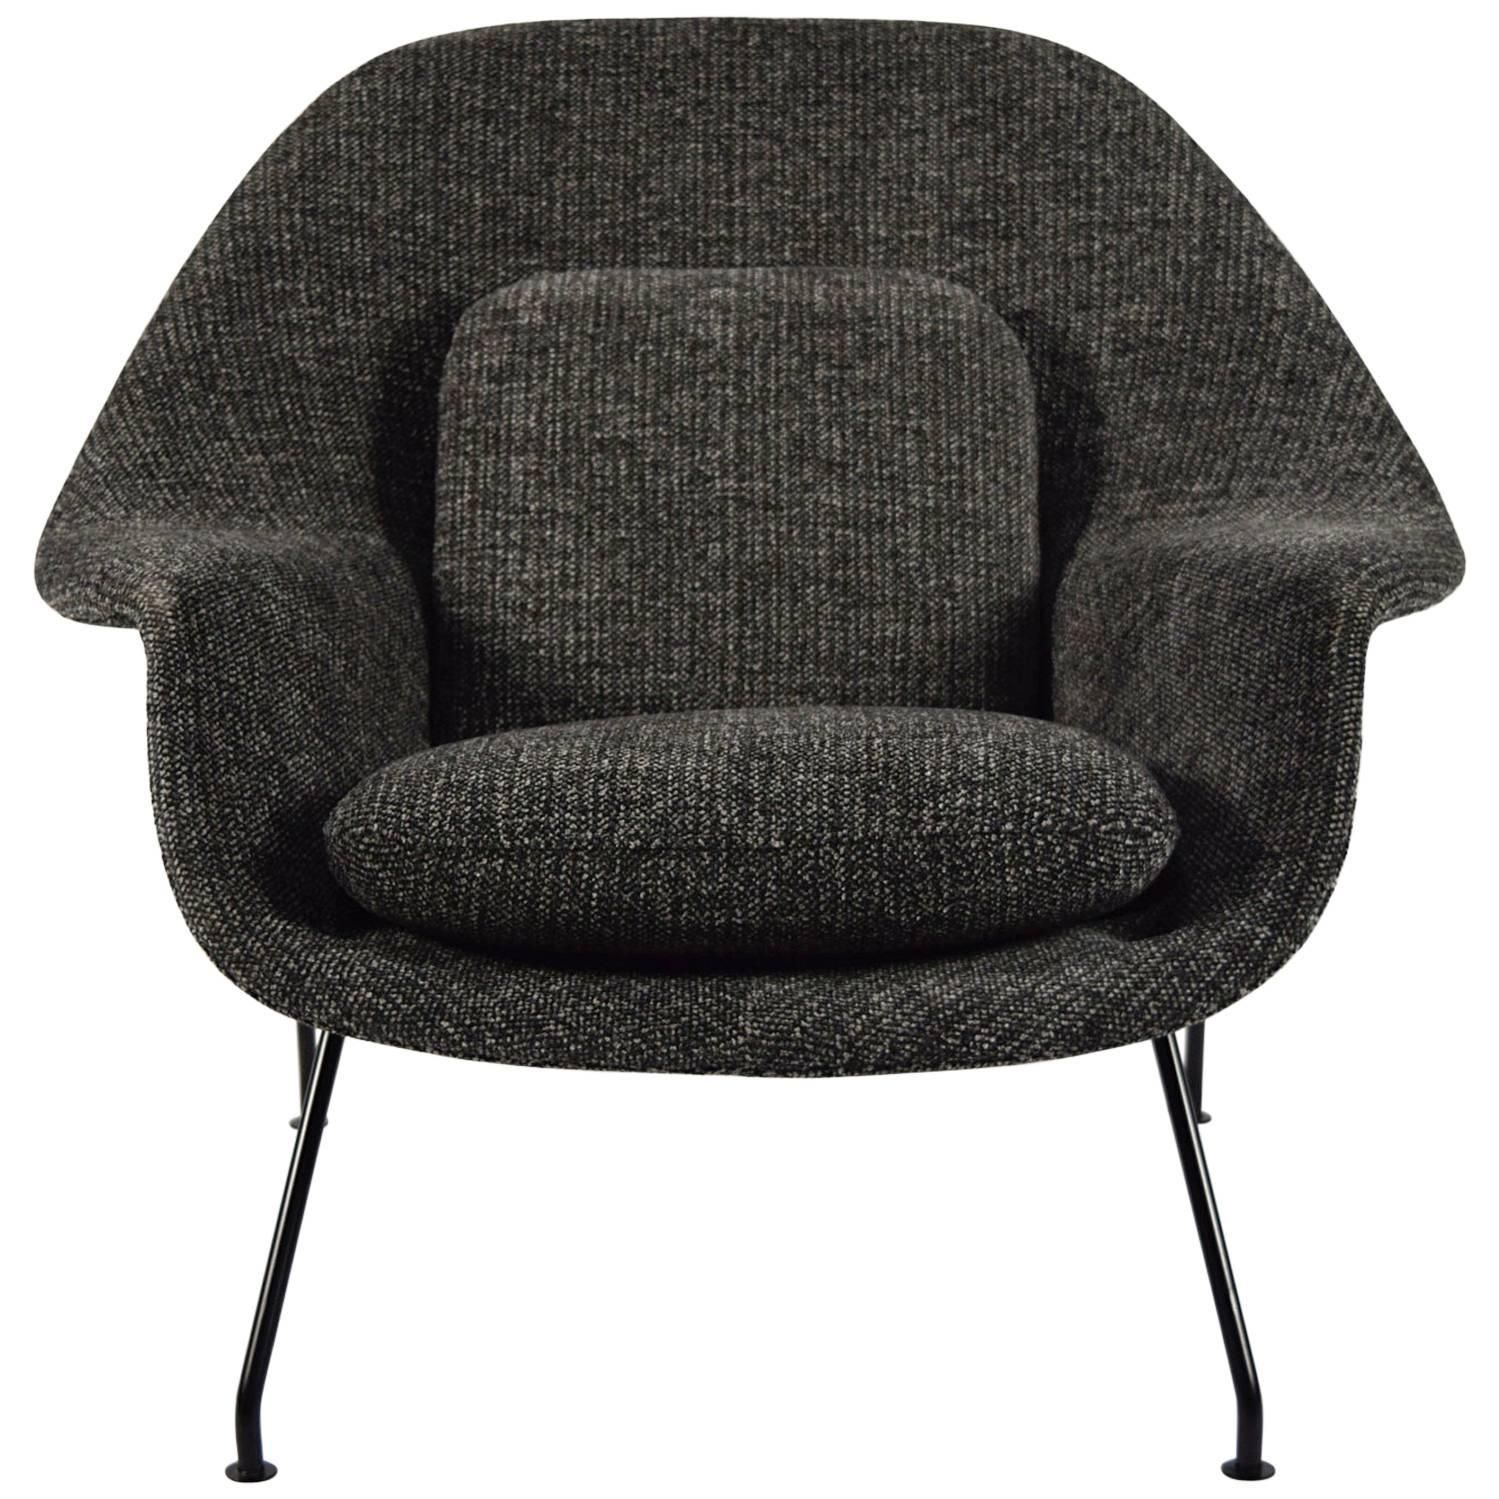 Eero Saarinen Womb Chair For Knoll In Holly Hunt Great